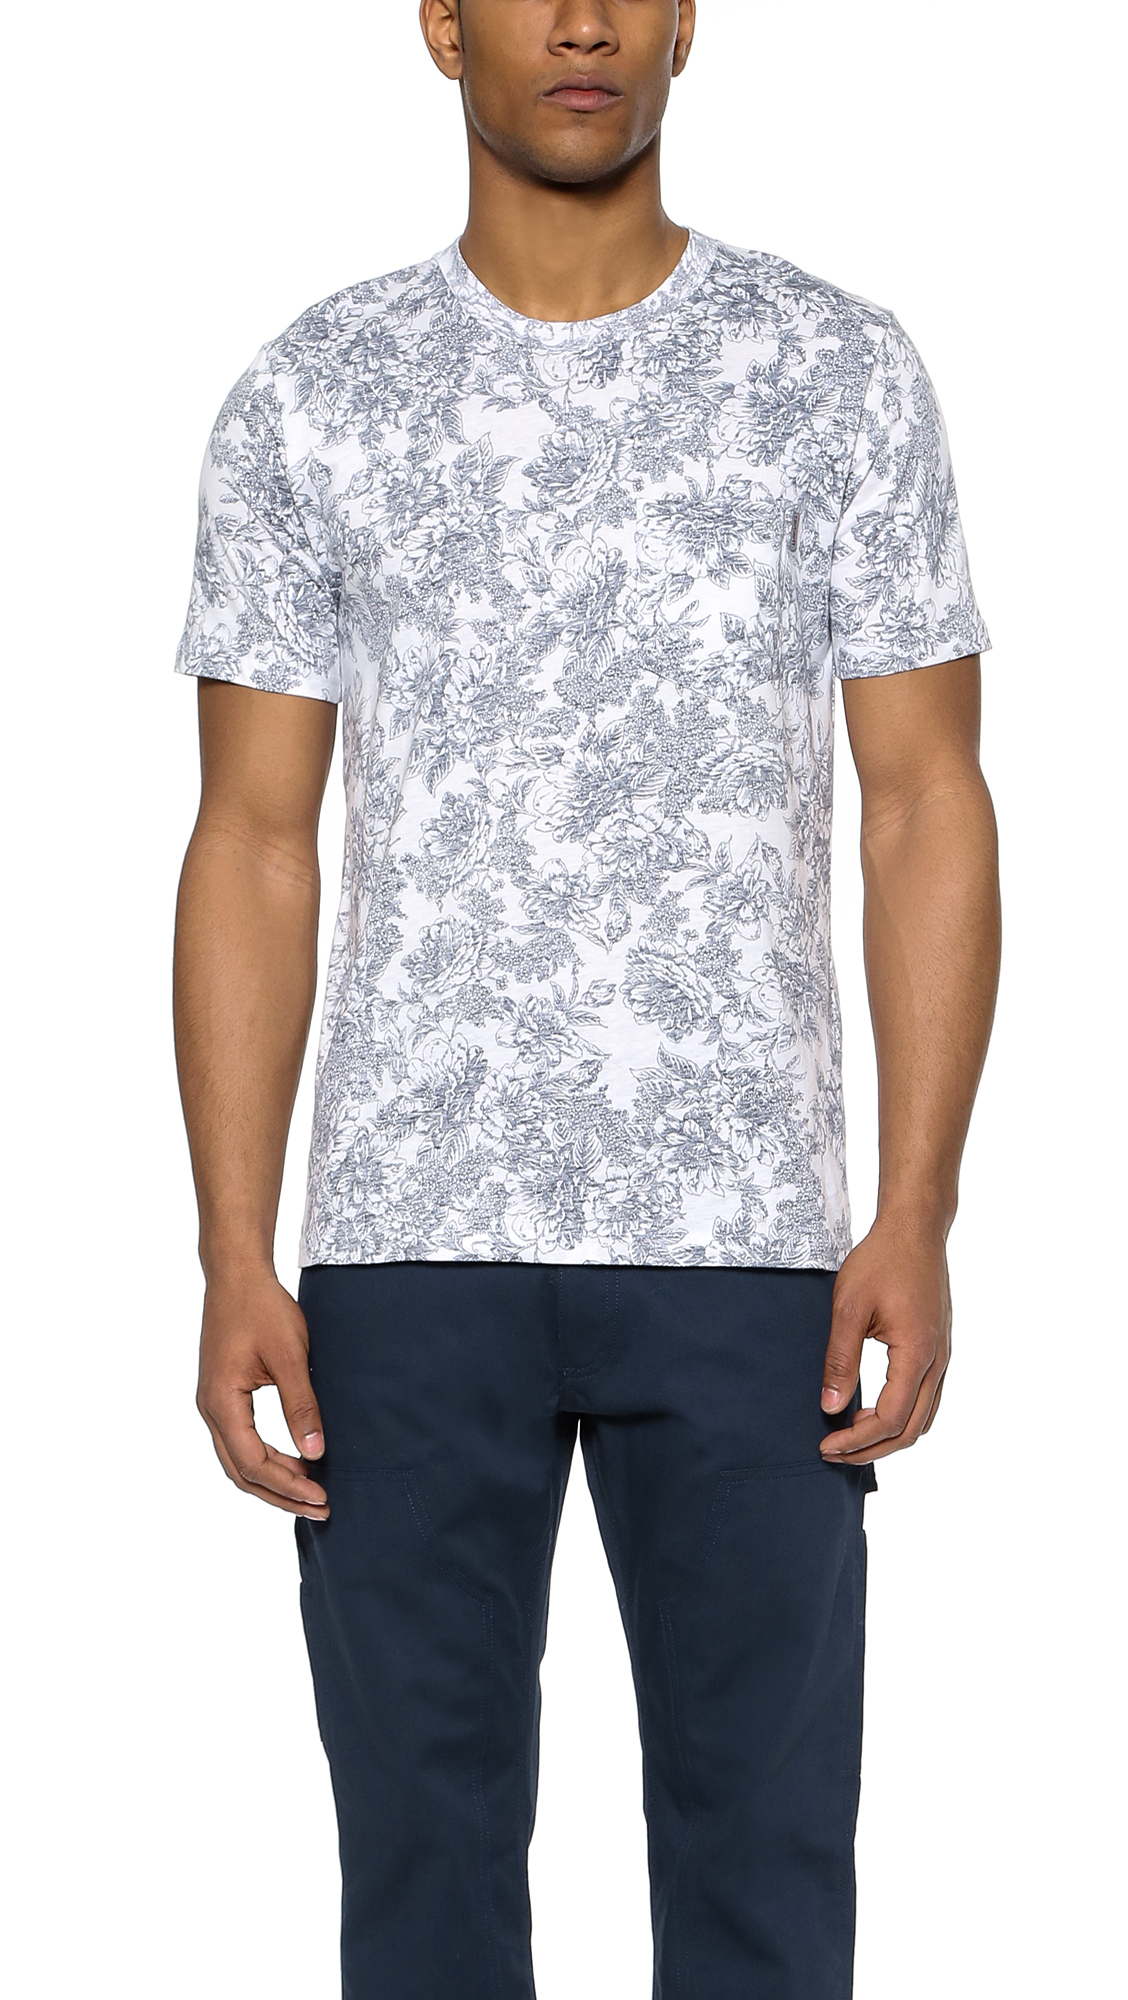 Carhartt WIP Wild Rose Pocket T-Shirt | Men's Prints